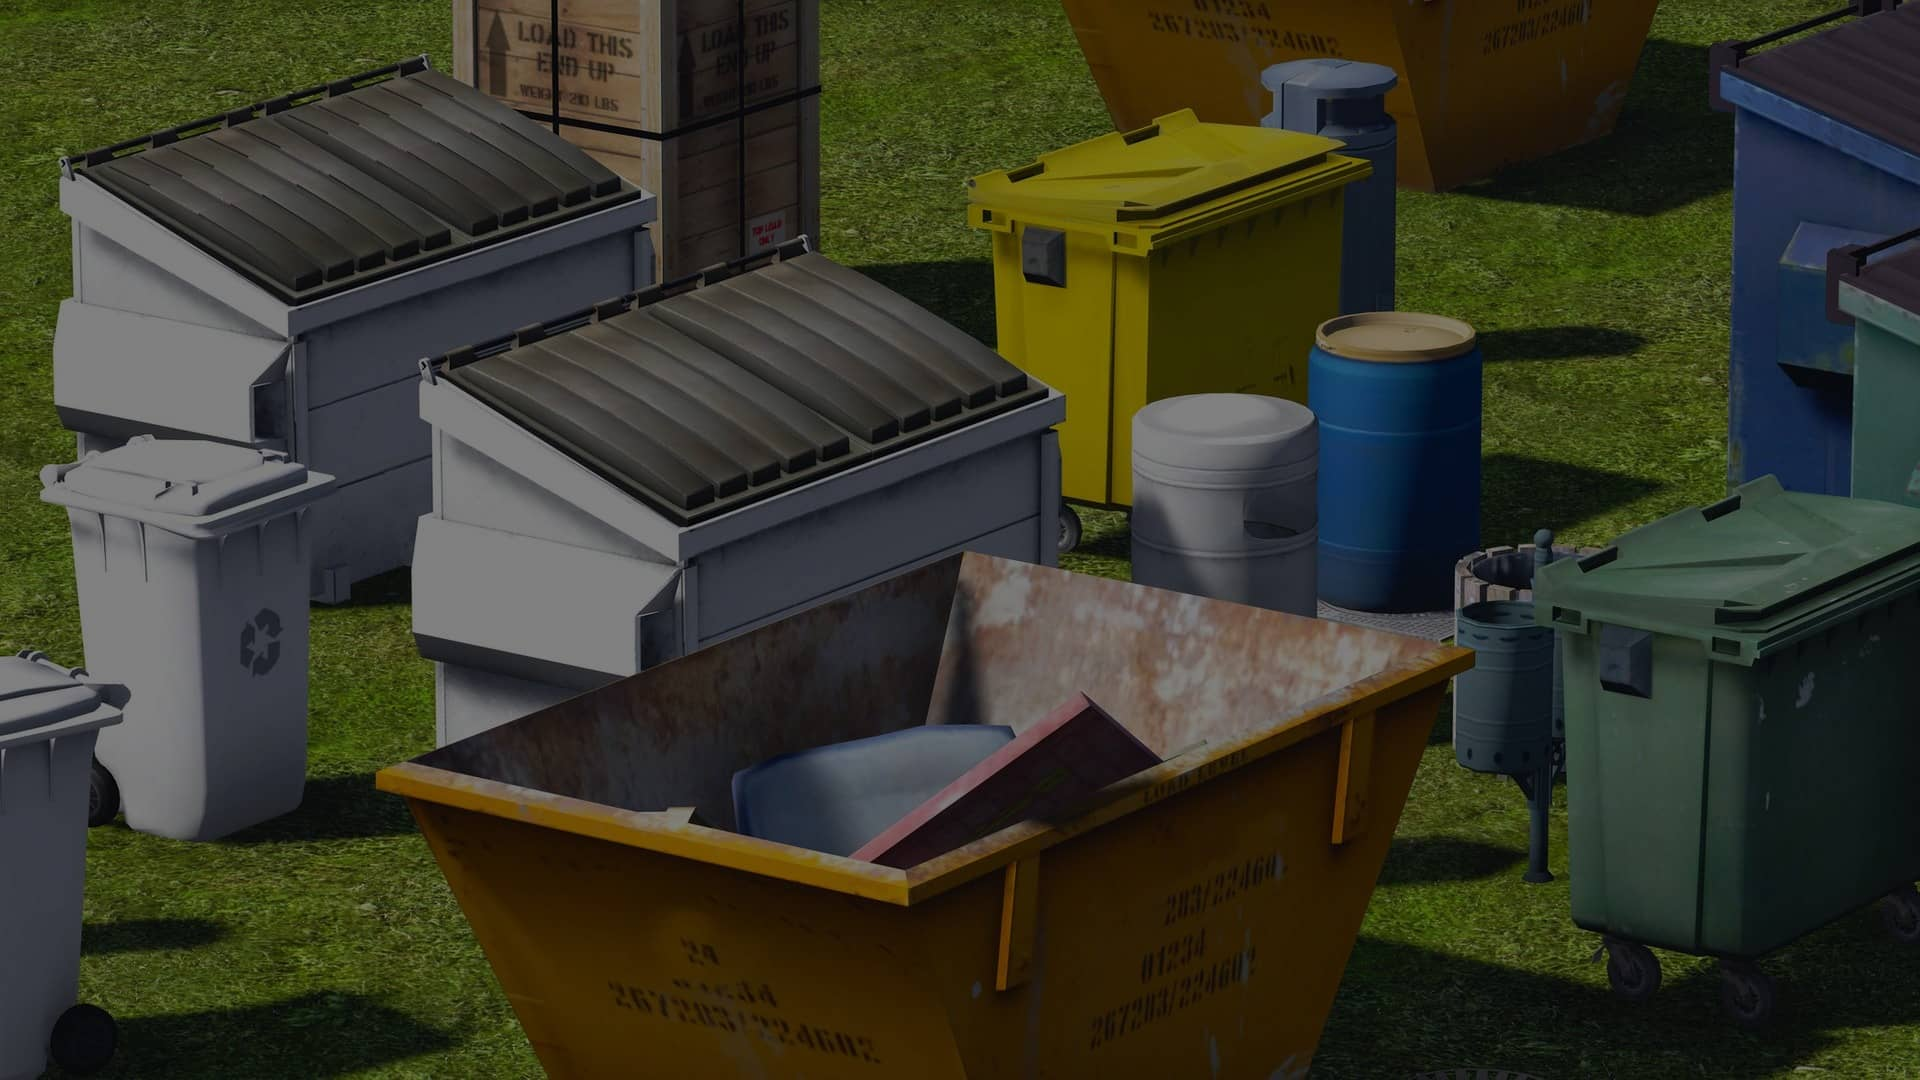 Should You Rent a Dumpster or Hire a Junk Removal Business?